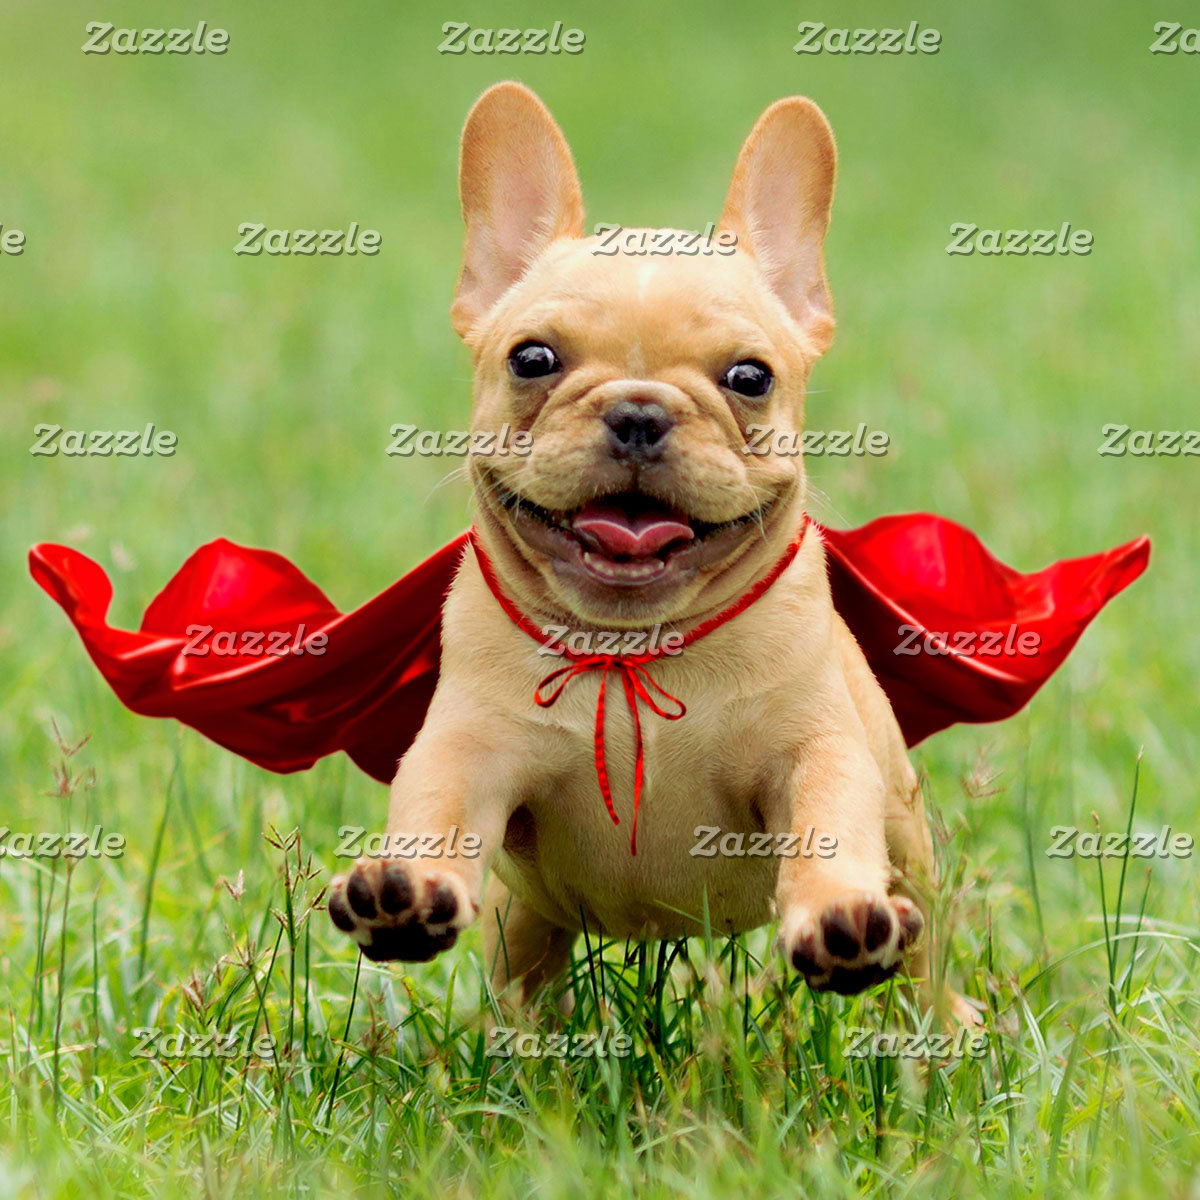 Cute French Bulldog Superhero Runs in Grass